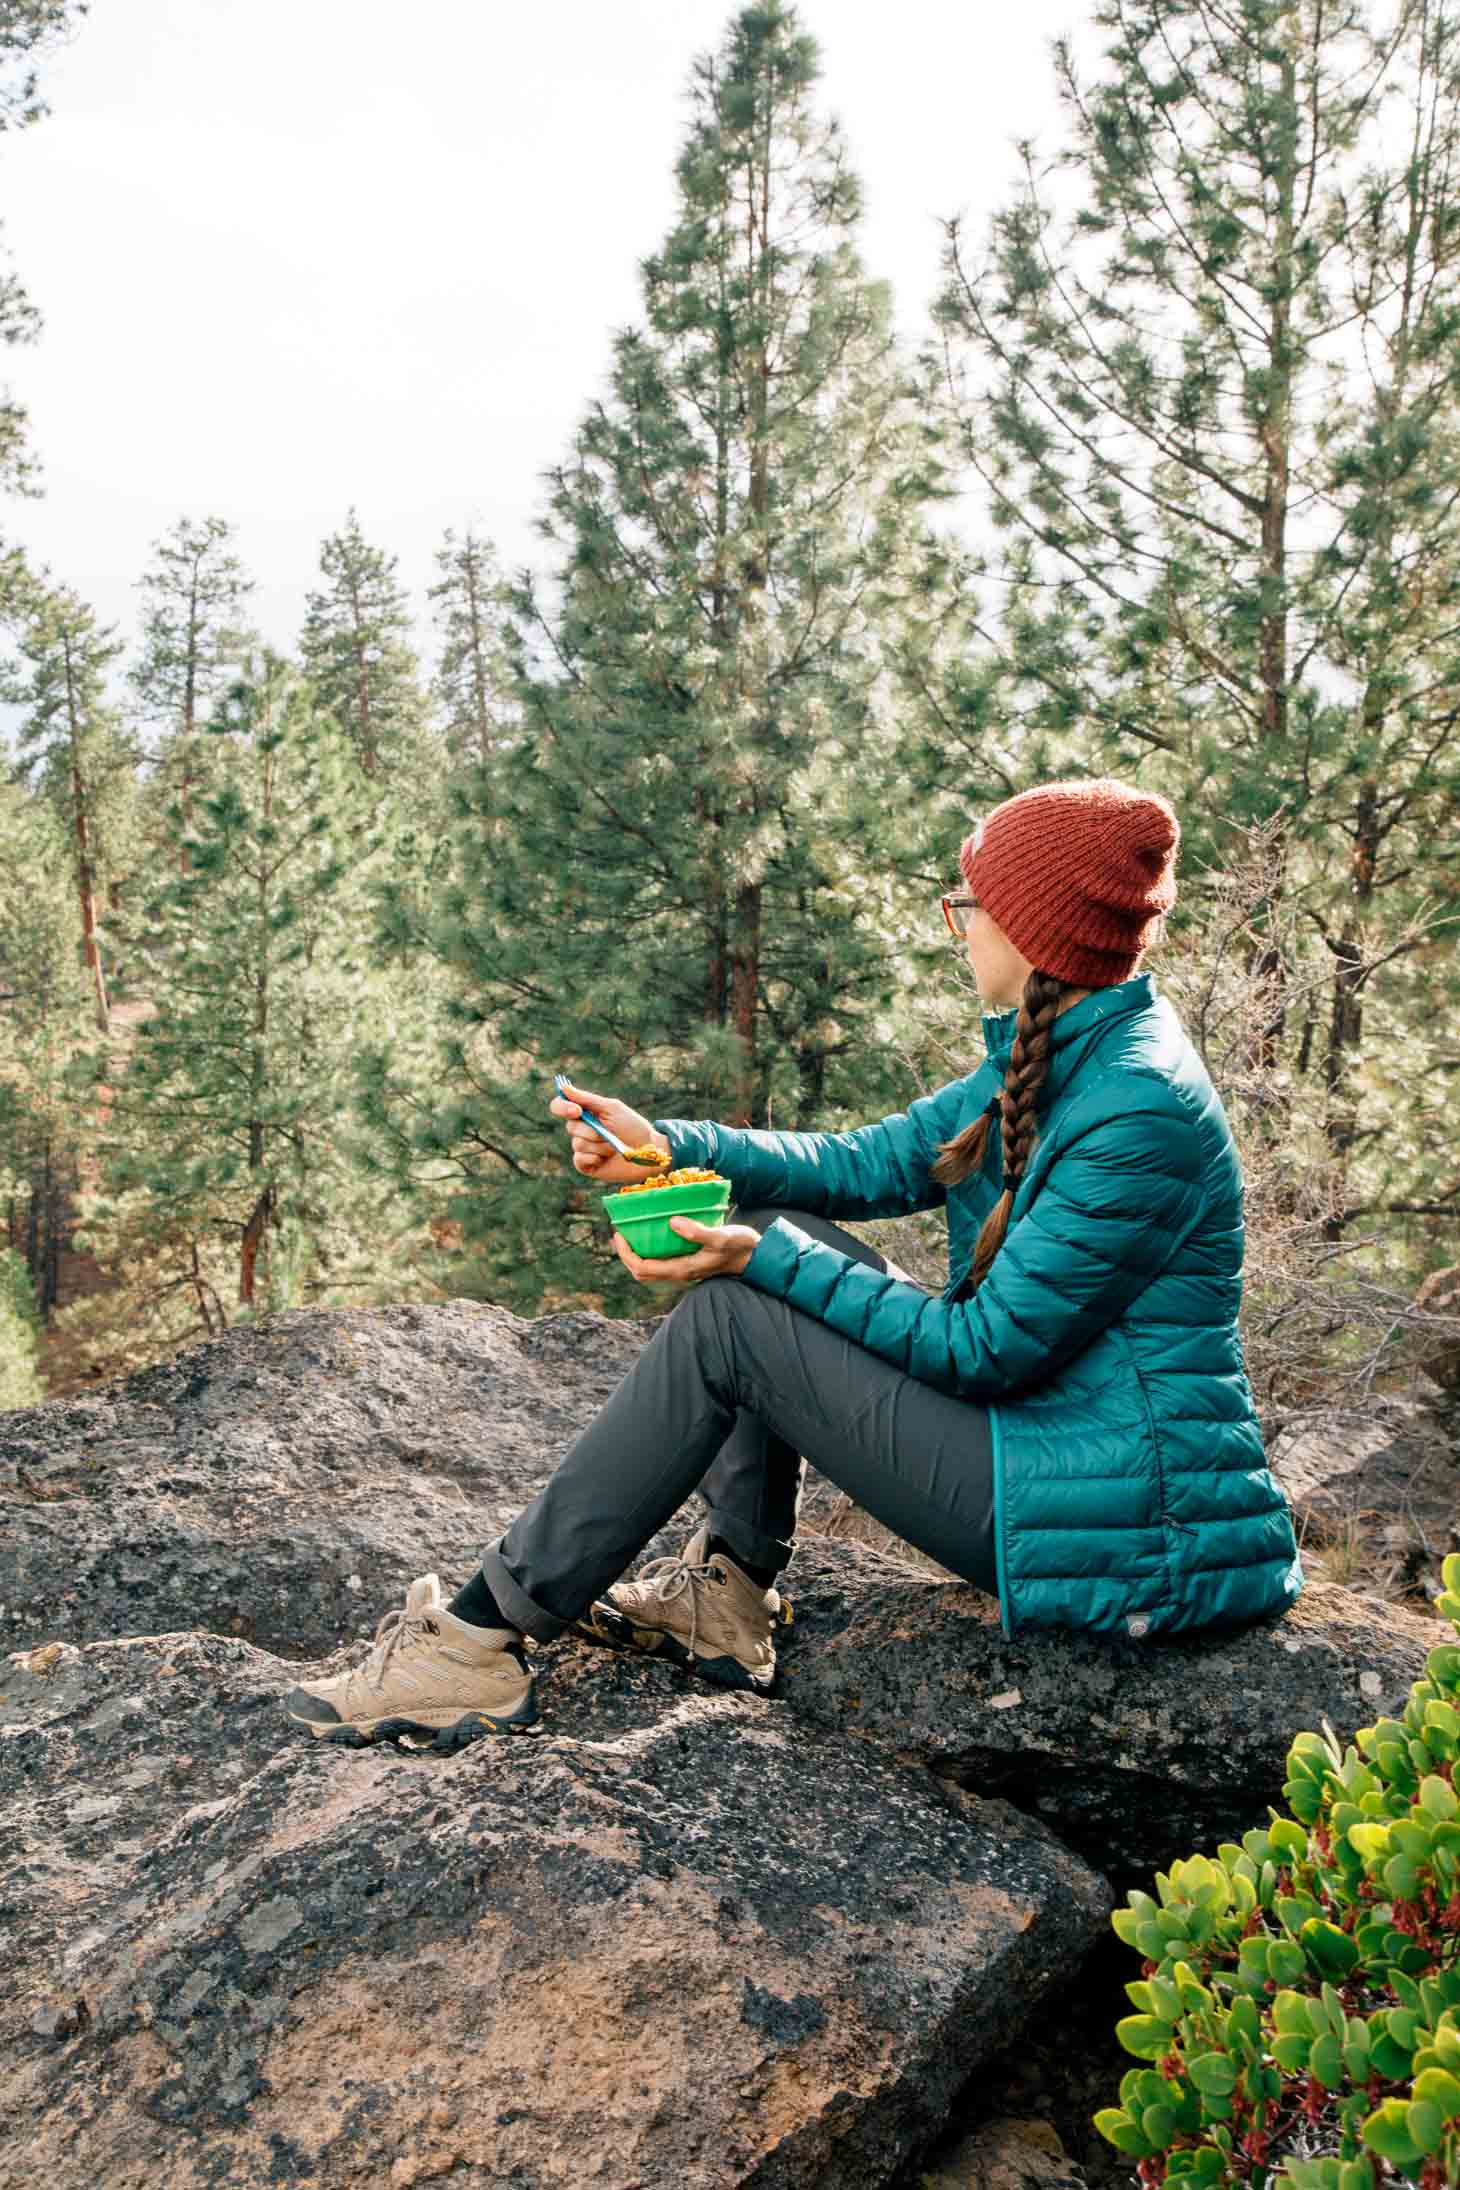 Megan sitting on a rock in the forest holding a green bowl